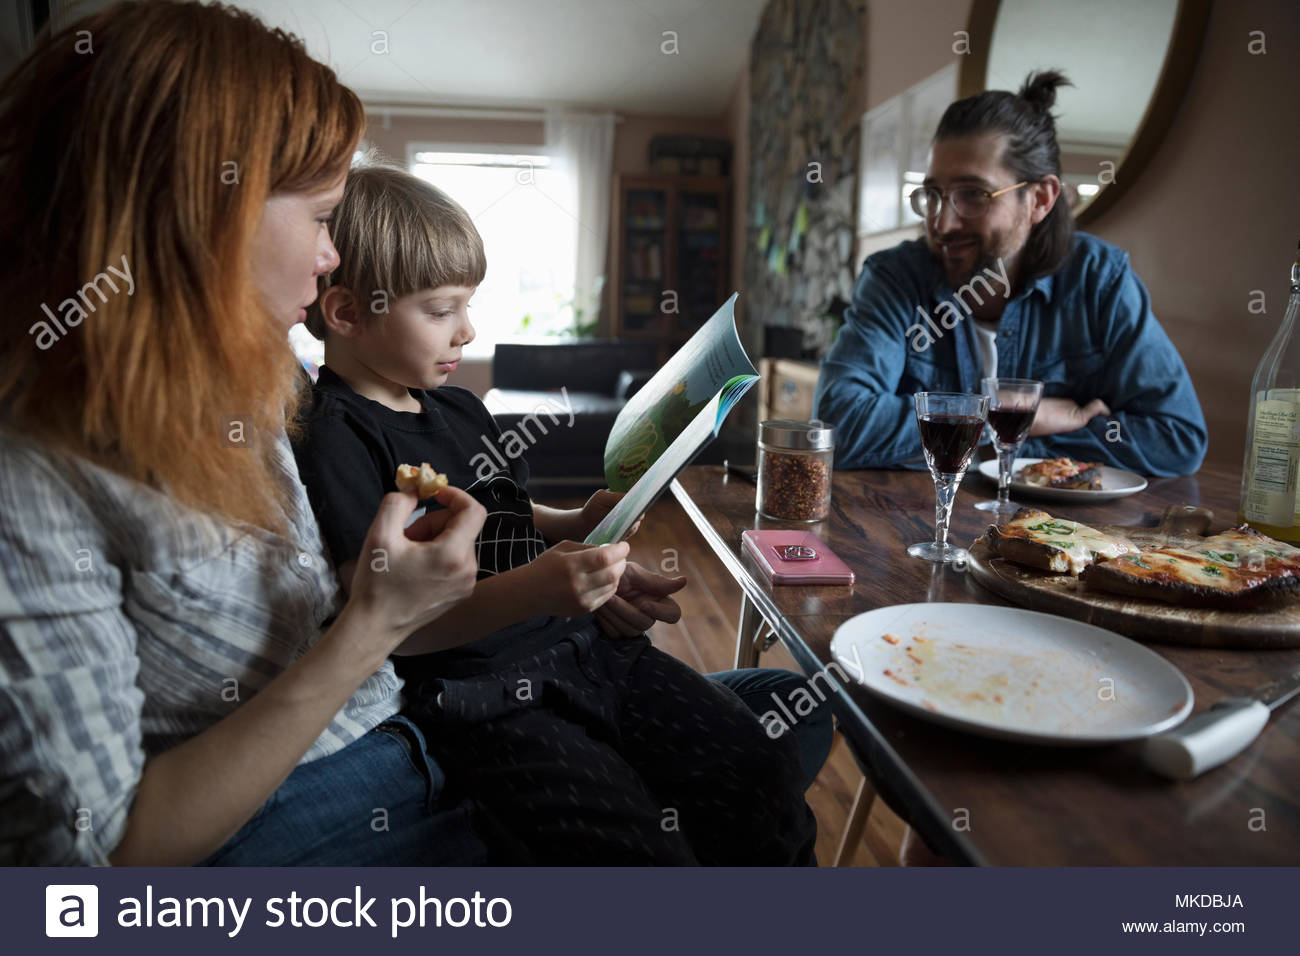 Family eating homemade pizza, reading book and drinking wine at dining table - Stock Image